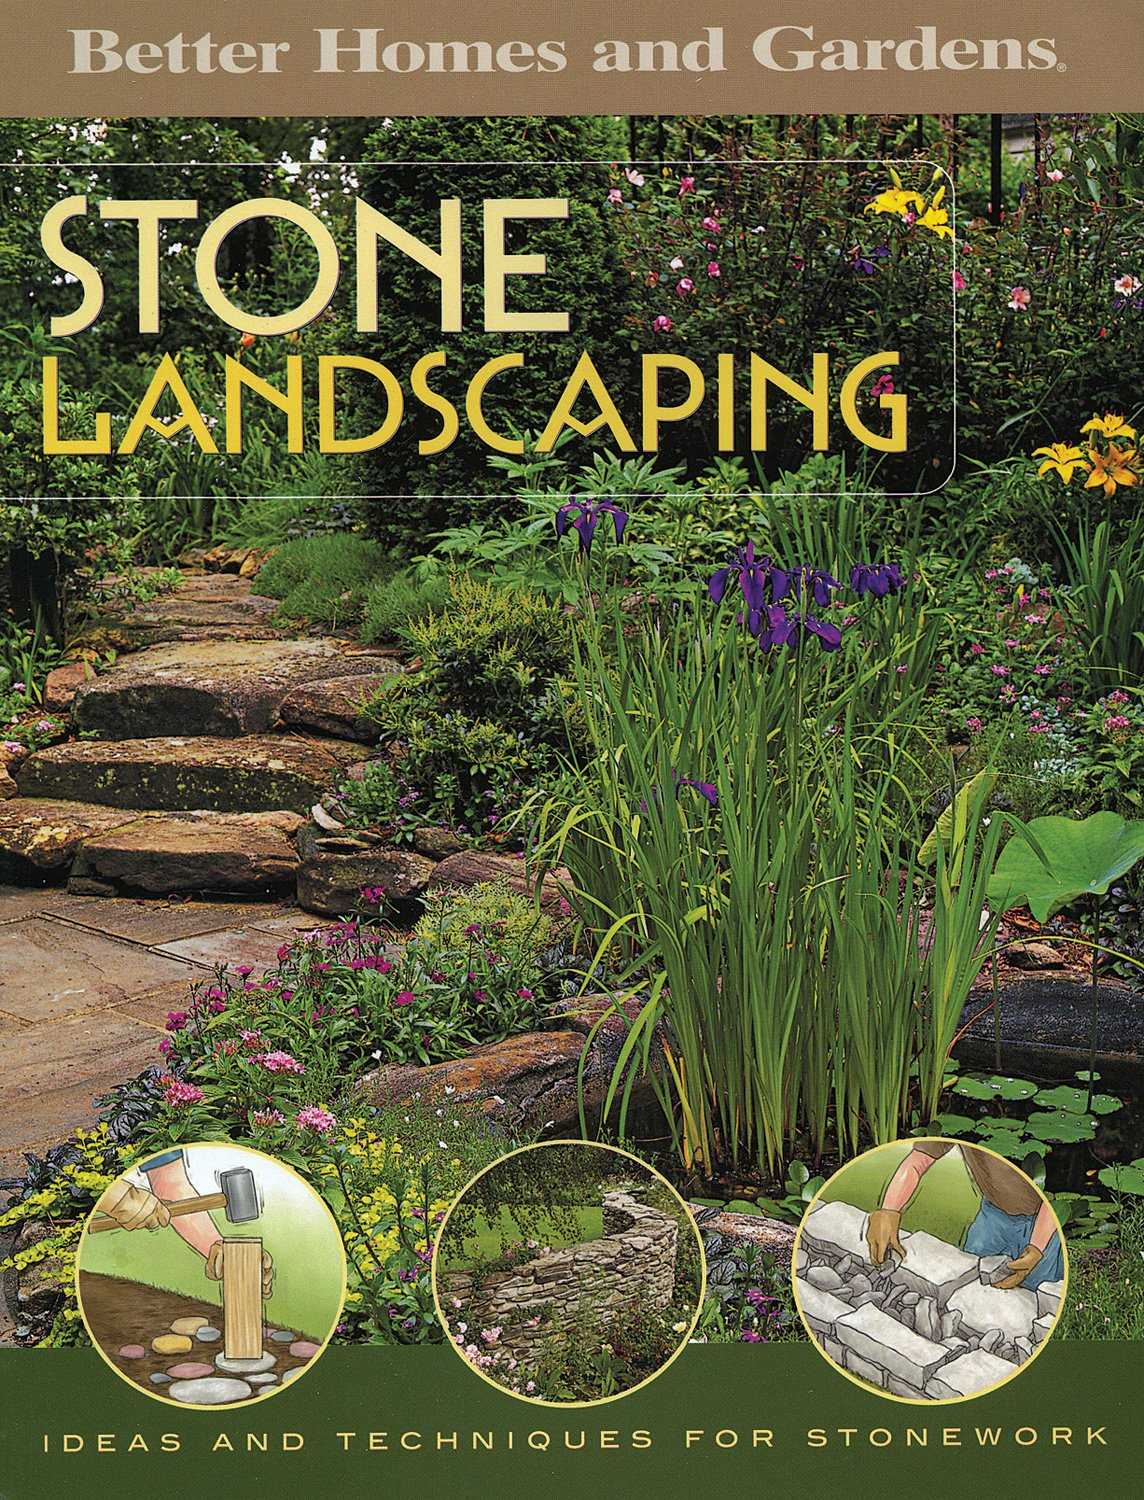 Stone Landscaping (Better Homes And Gardens Home): Better Homes And Gardens:  9780696217579: Amazon.com: Books